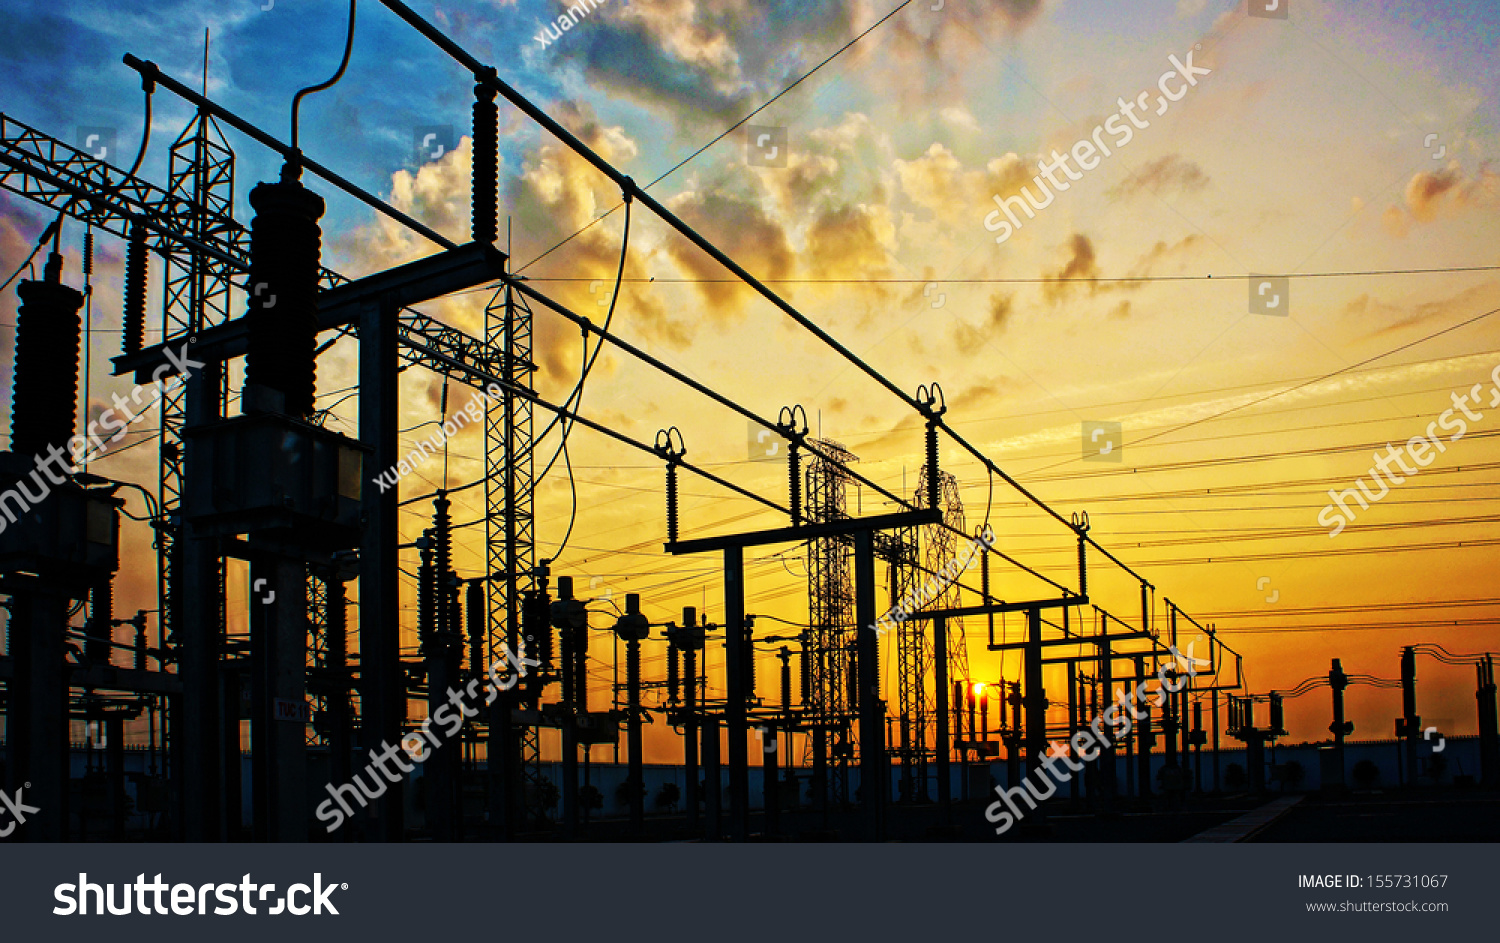 stock-photo-impression-network-at-transformer-station-in-sunrise-high-voltage-up-to-yellow-sky-take-with-155731067